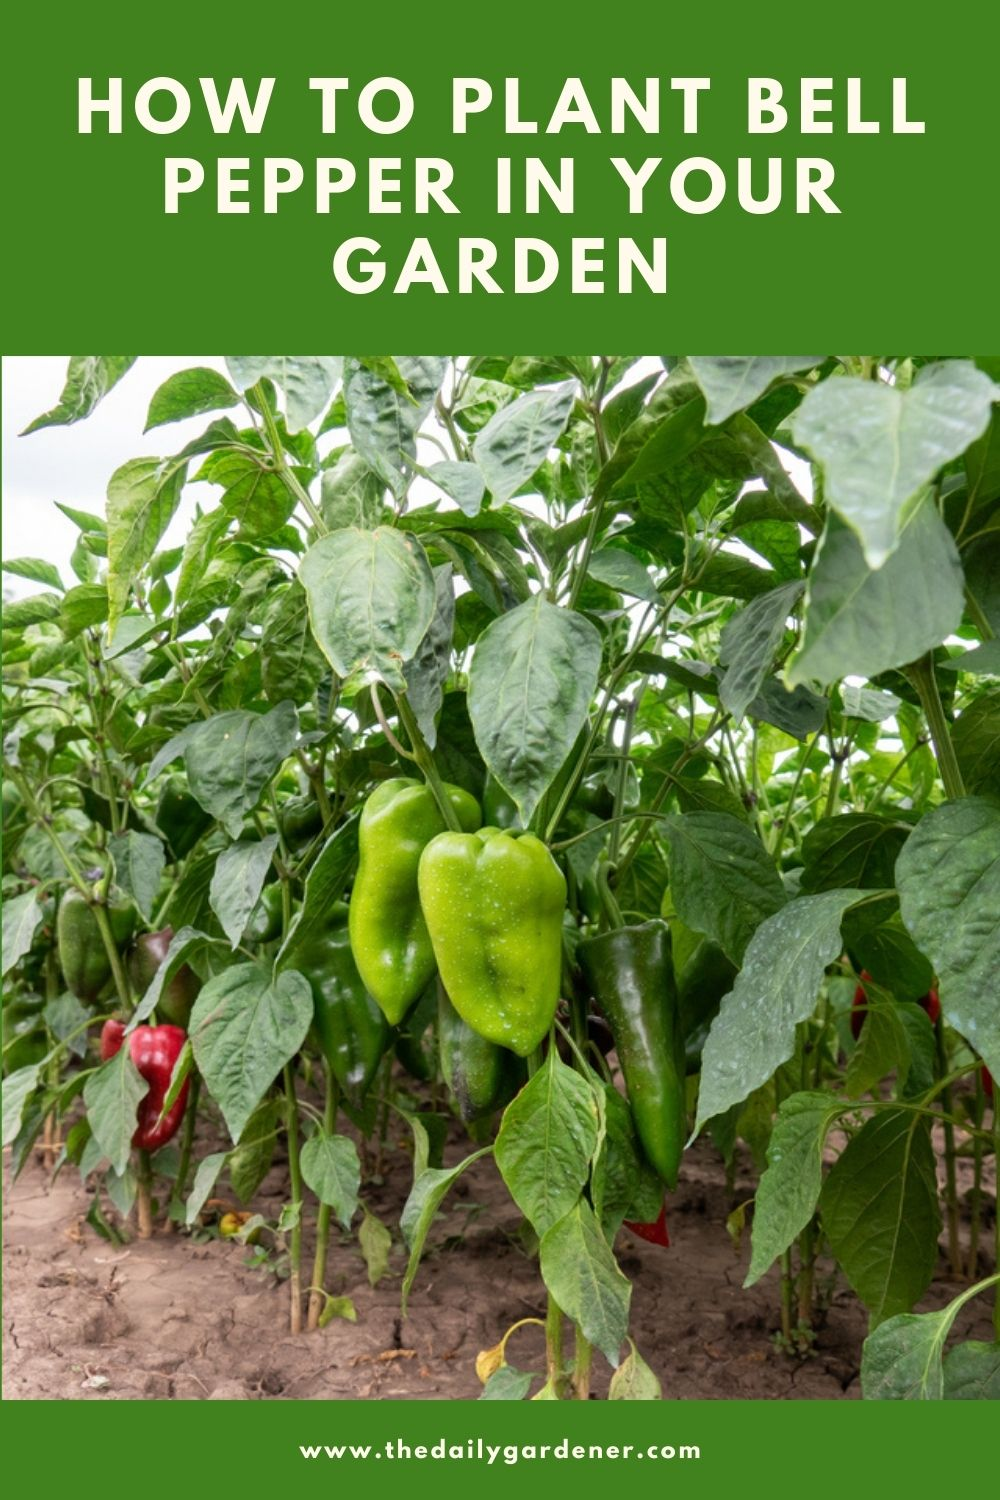 How to Plant Bell Pepper in Your Garden (Tricks to Care!) 2